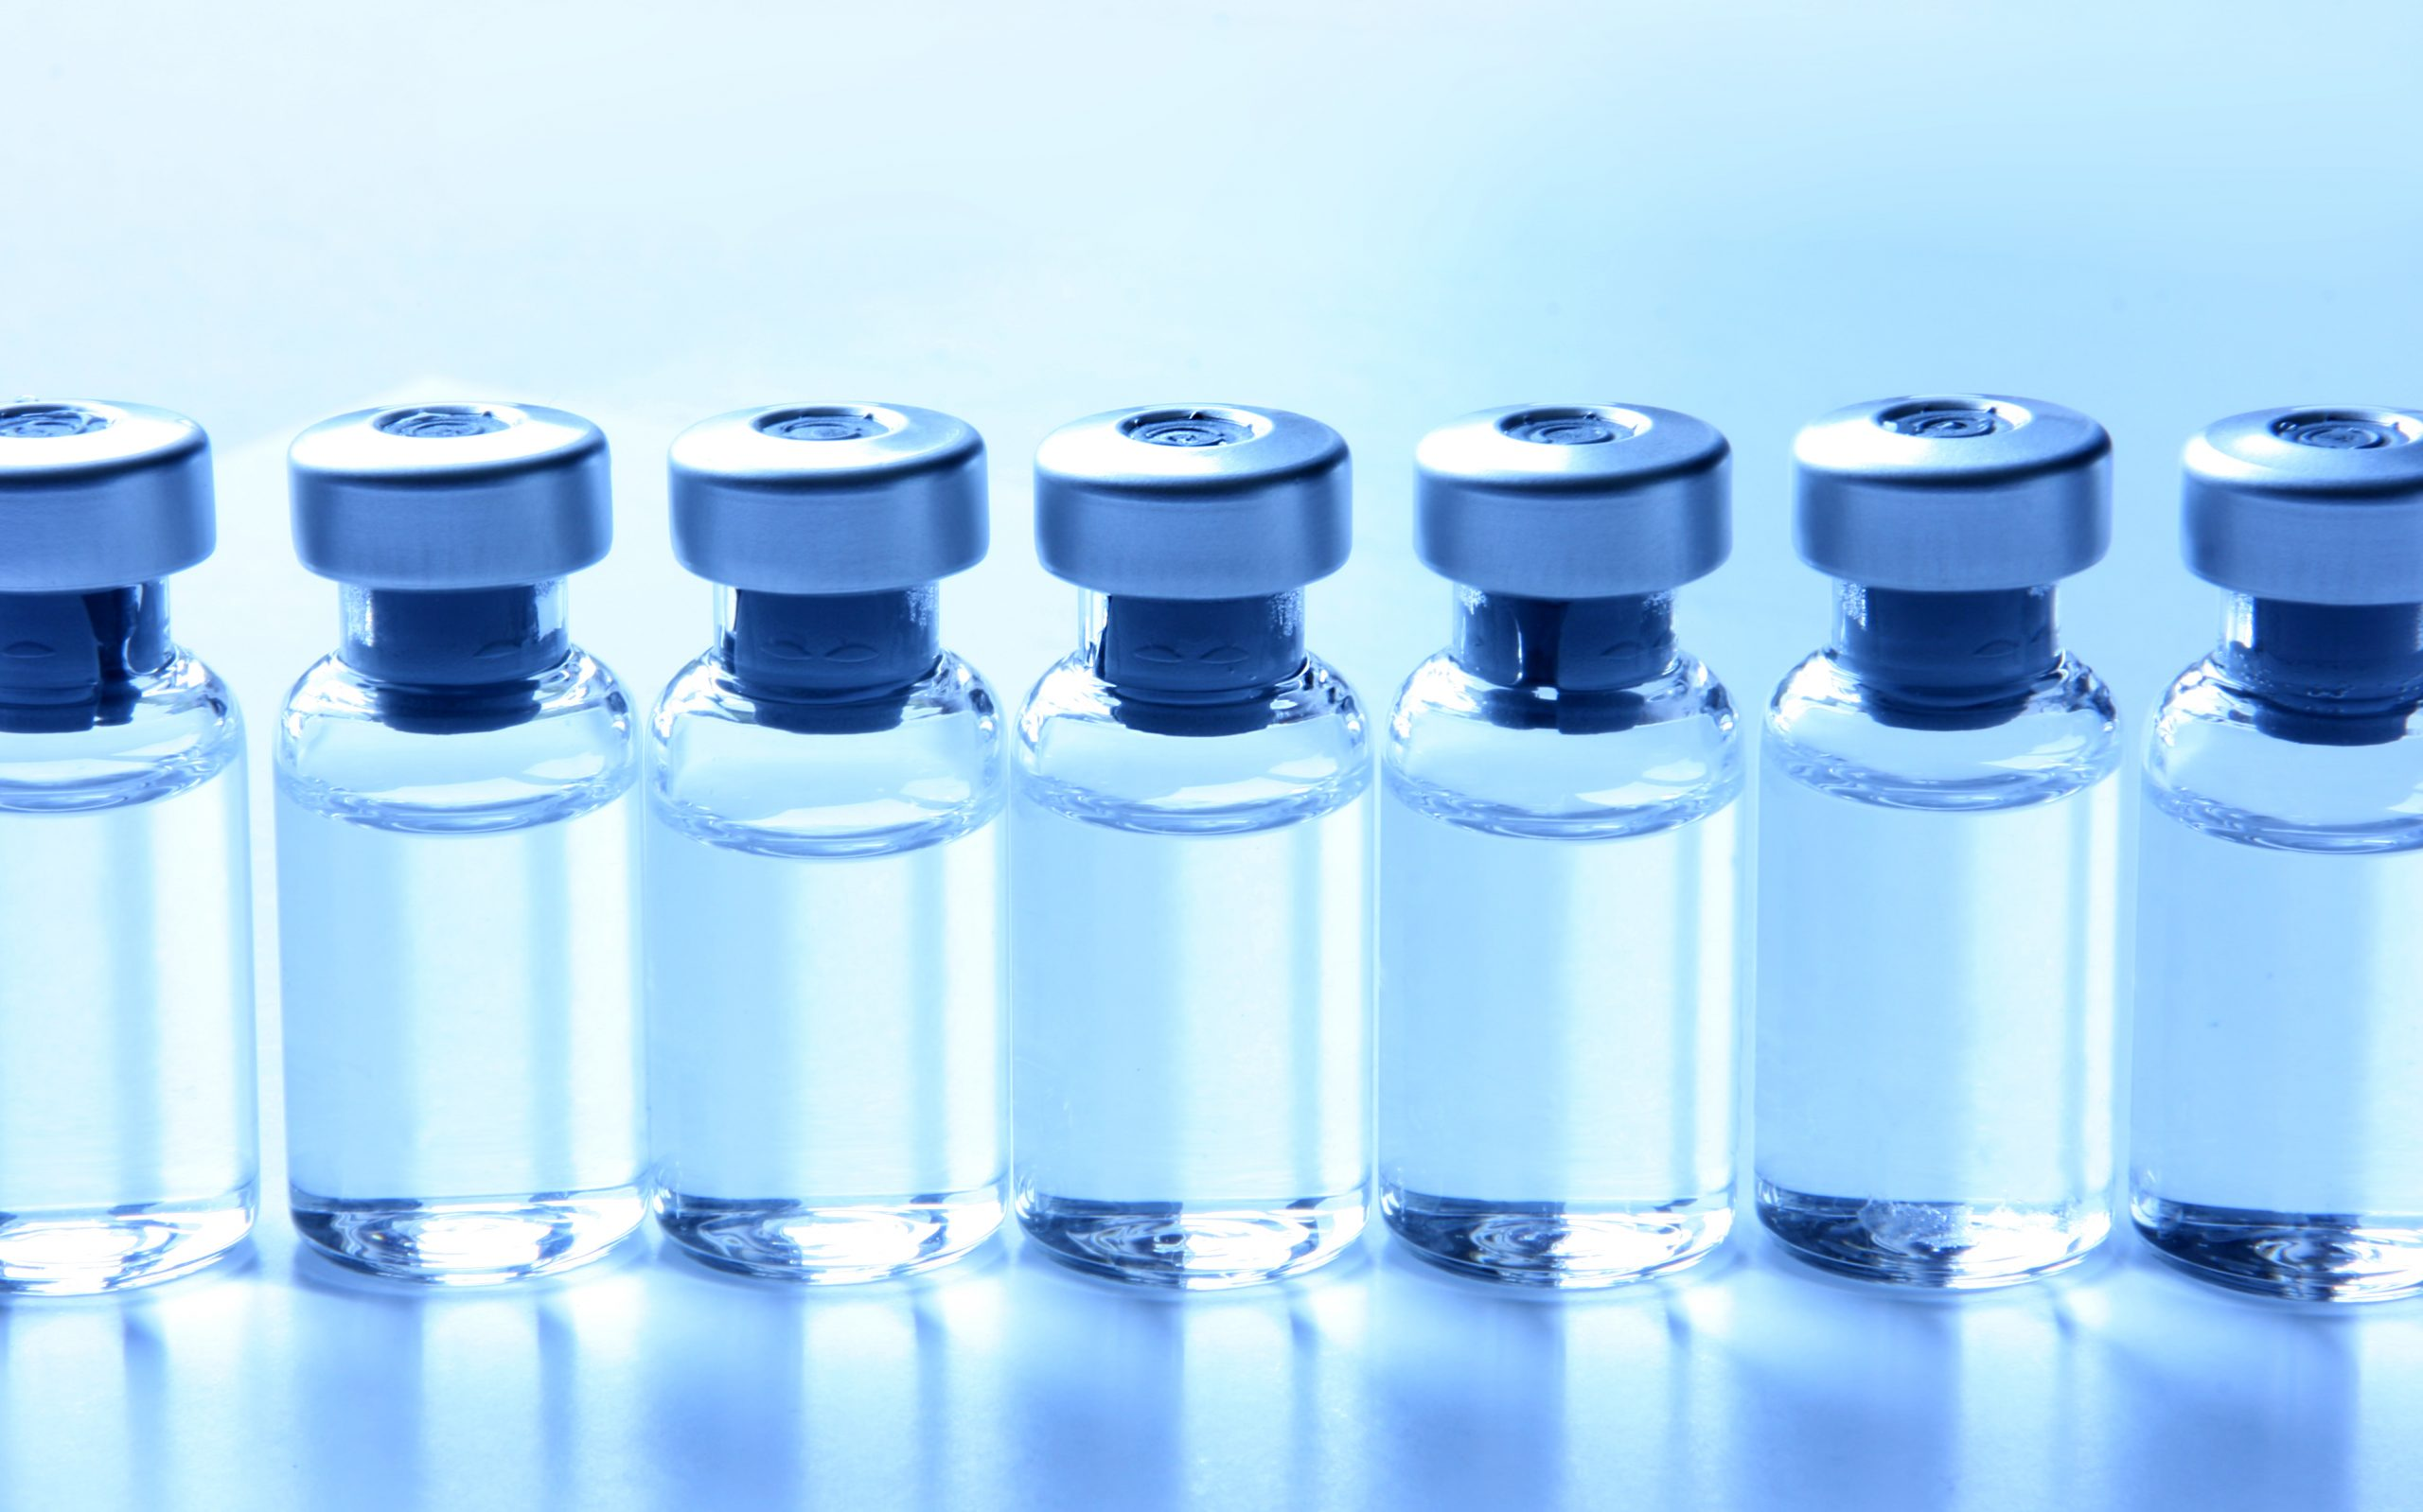 A row of vaccine vials on a light blue background